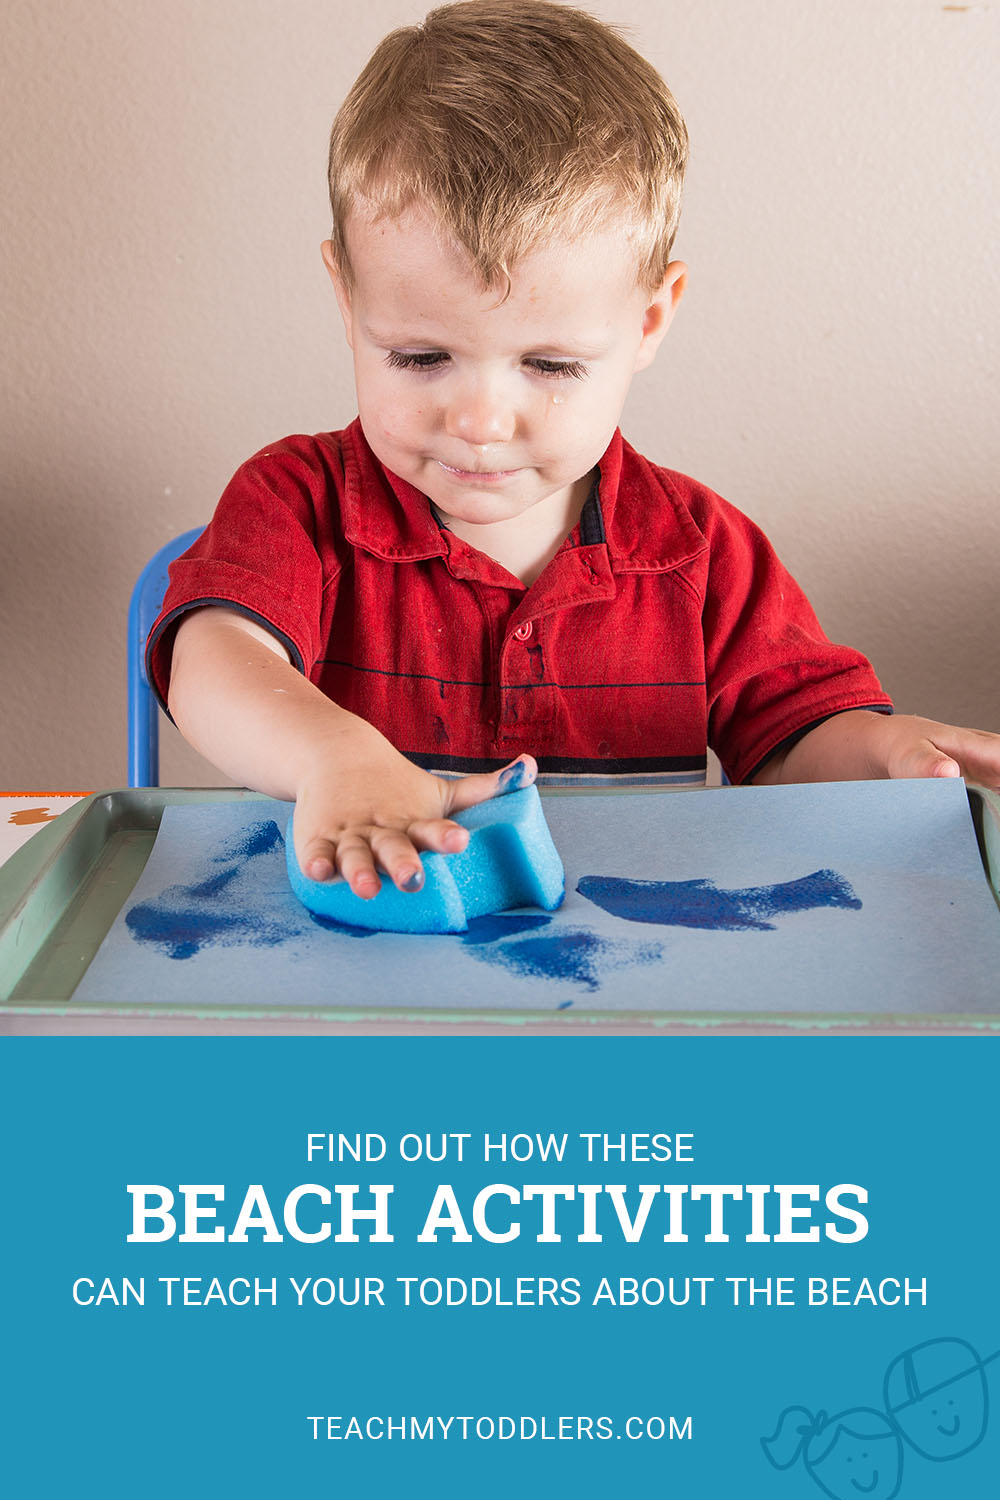 Find out how these beach activities can teach toddlers about the beach